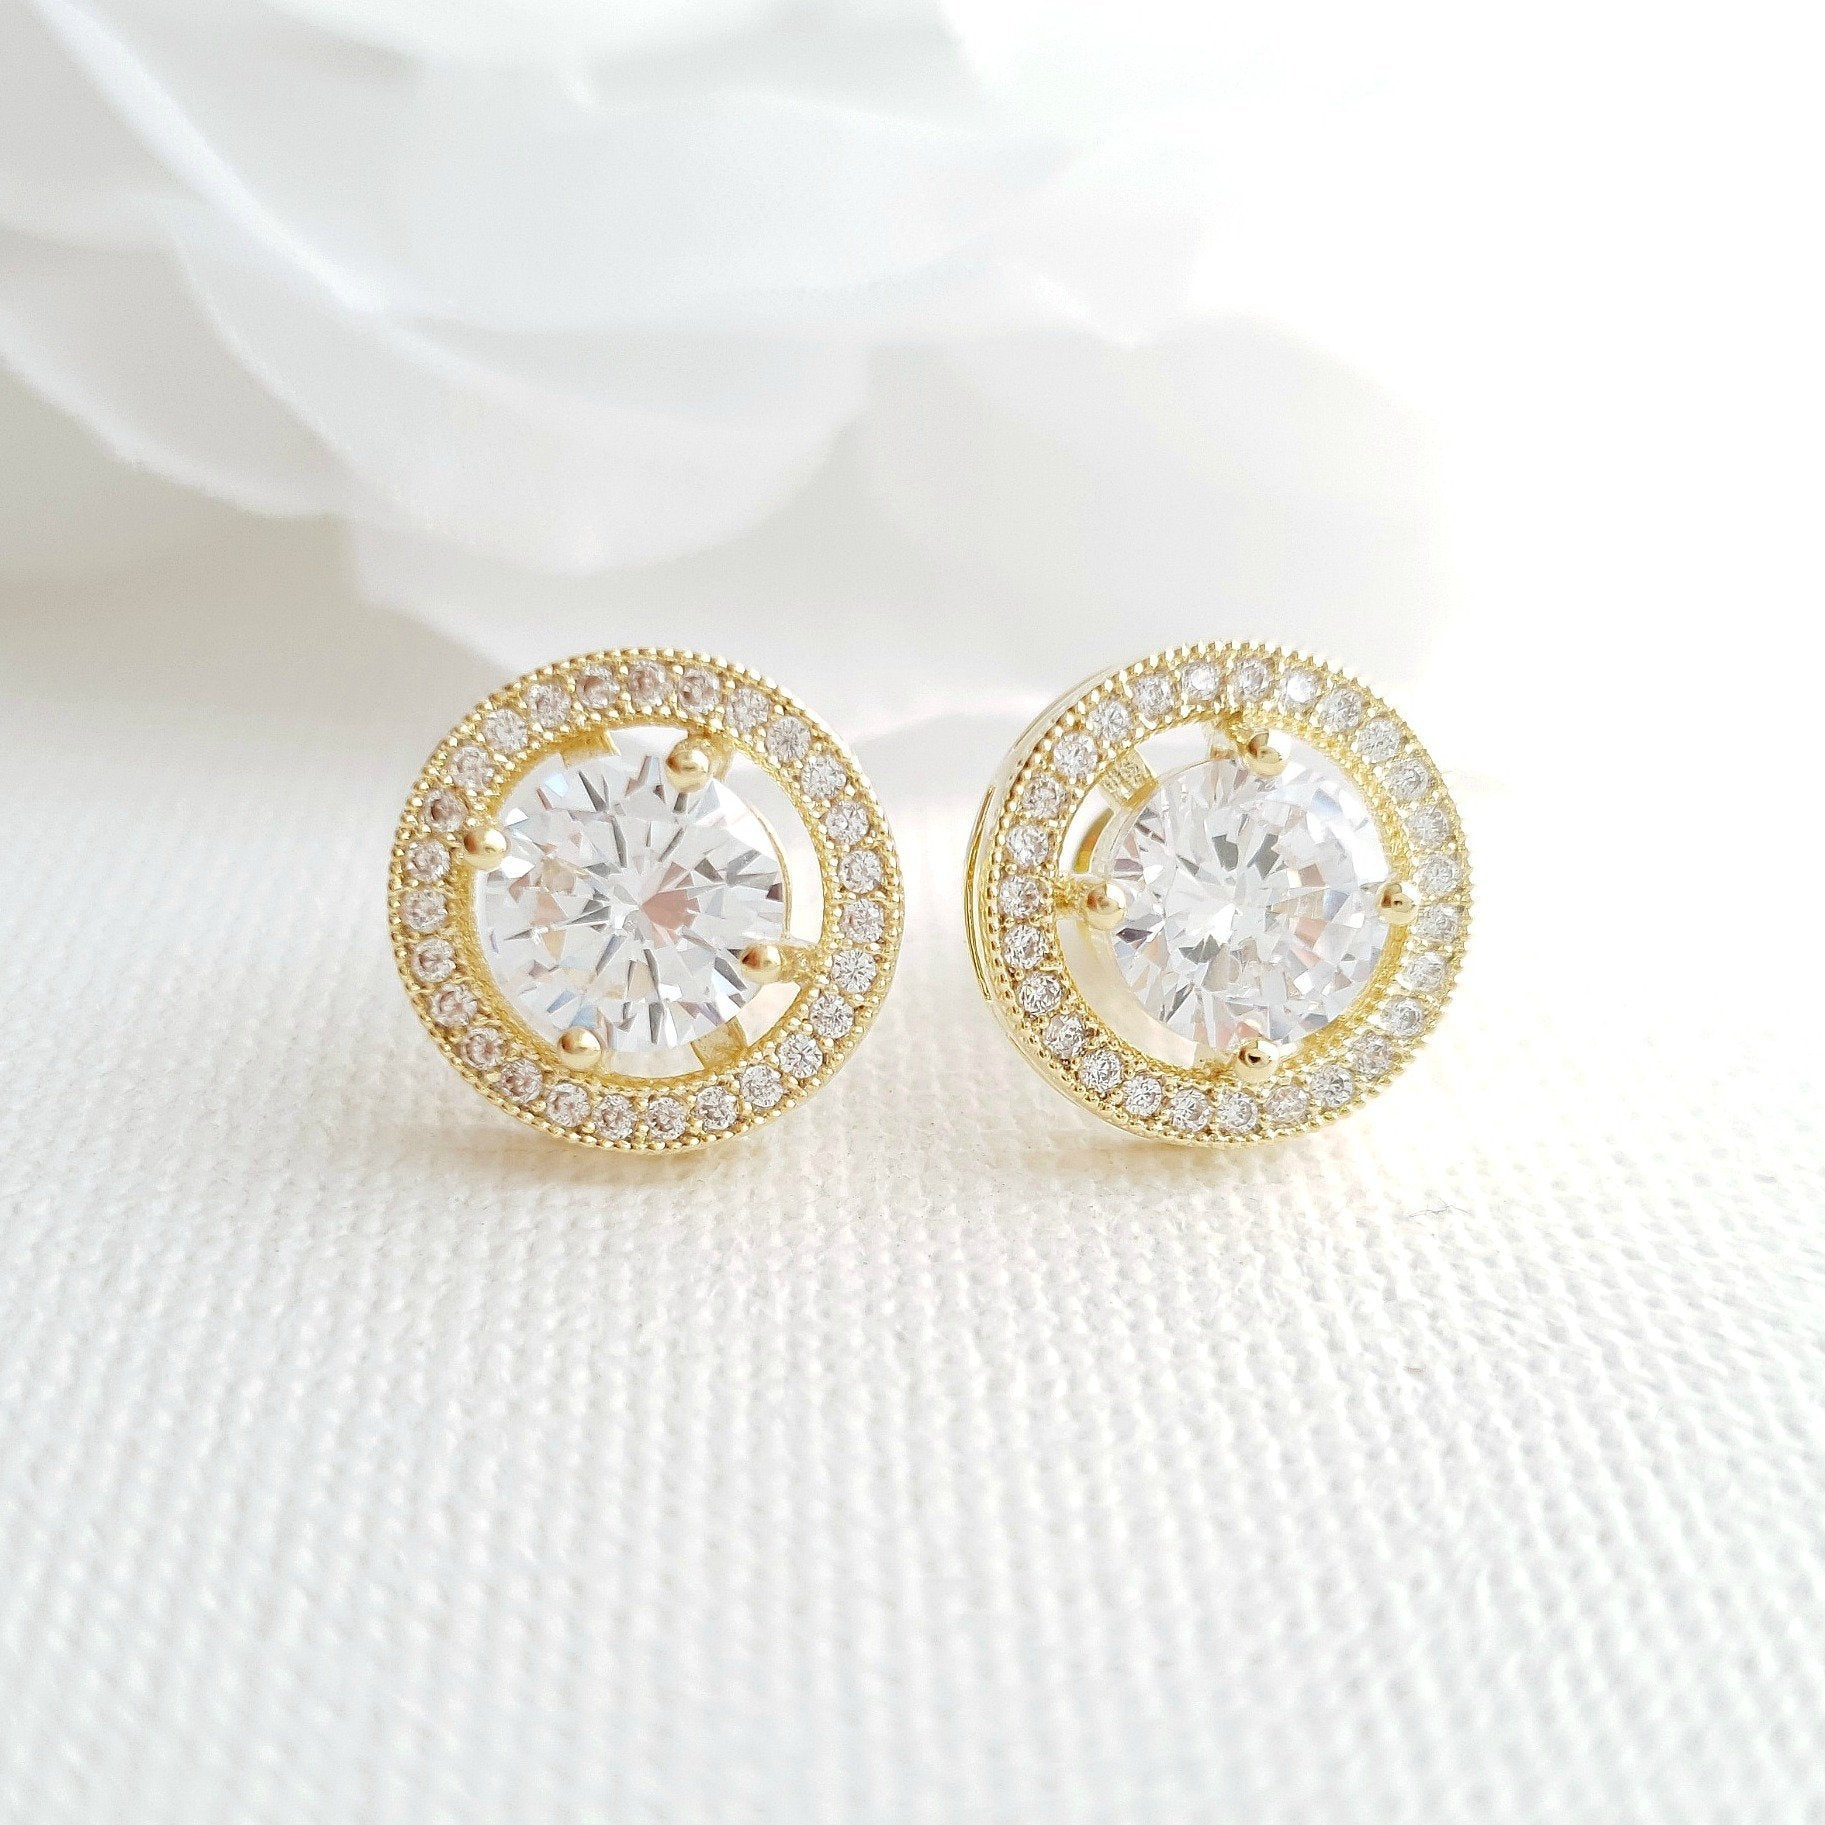 Gold Round Stud Earrings in Cubic Zirconia- Denise